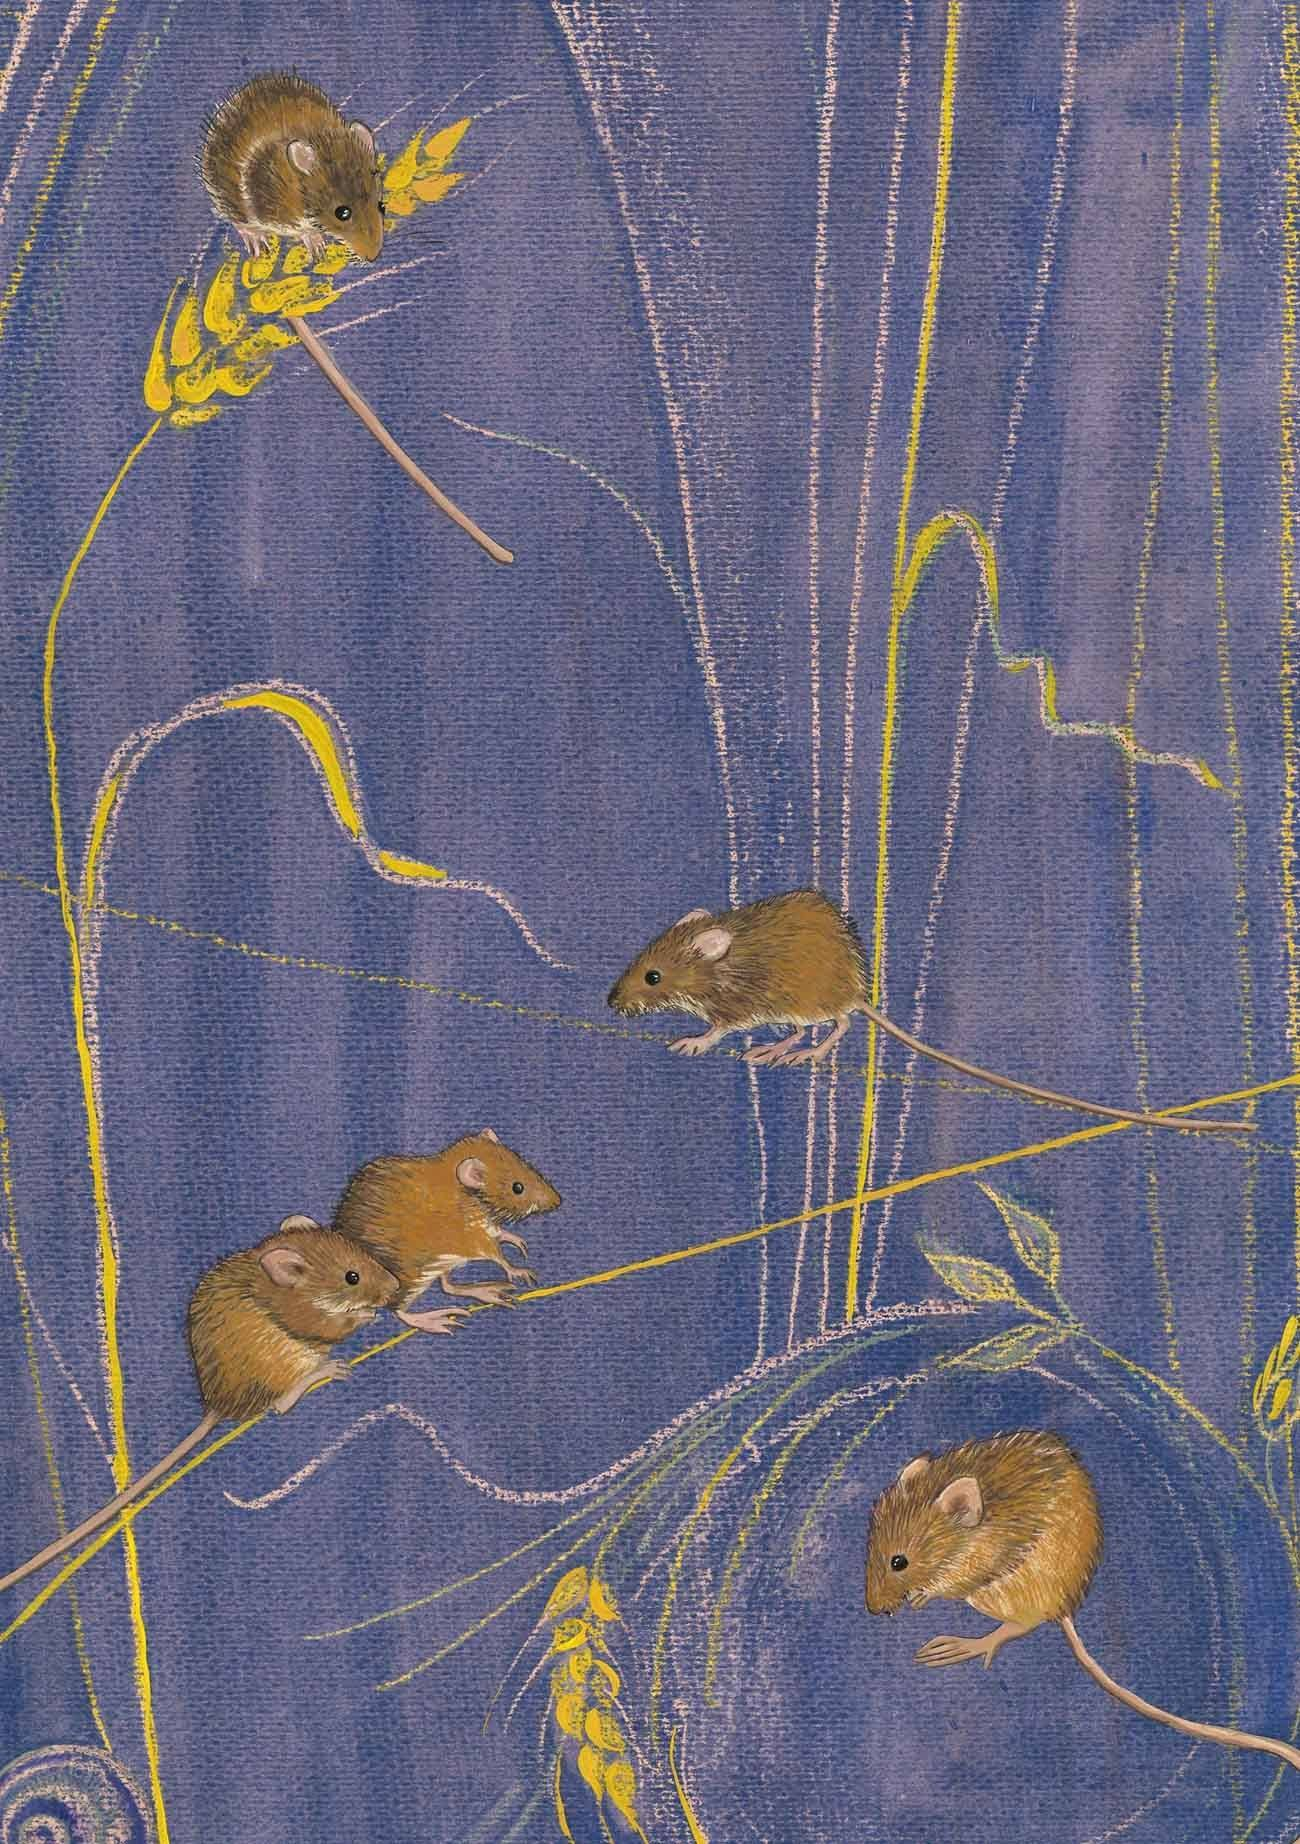 zb harvest mice.jpg